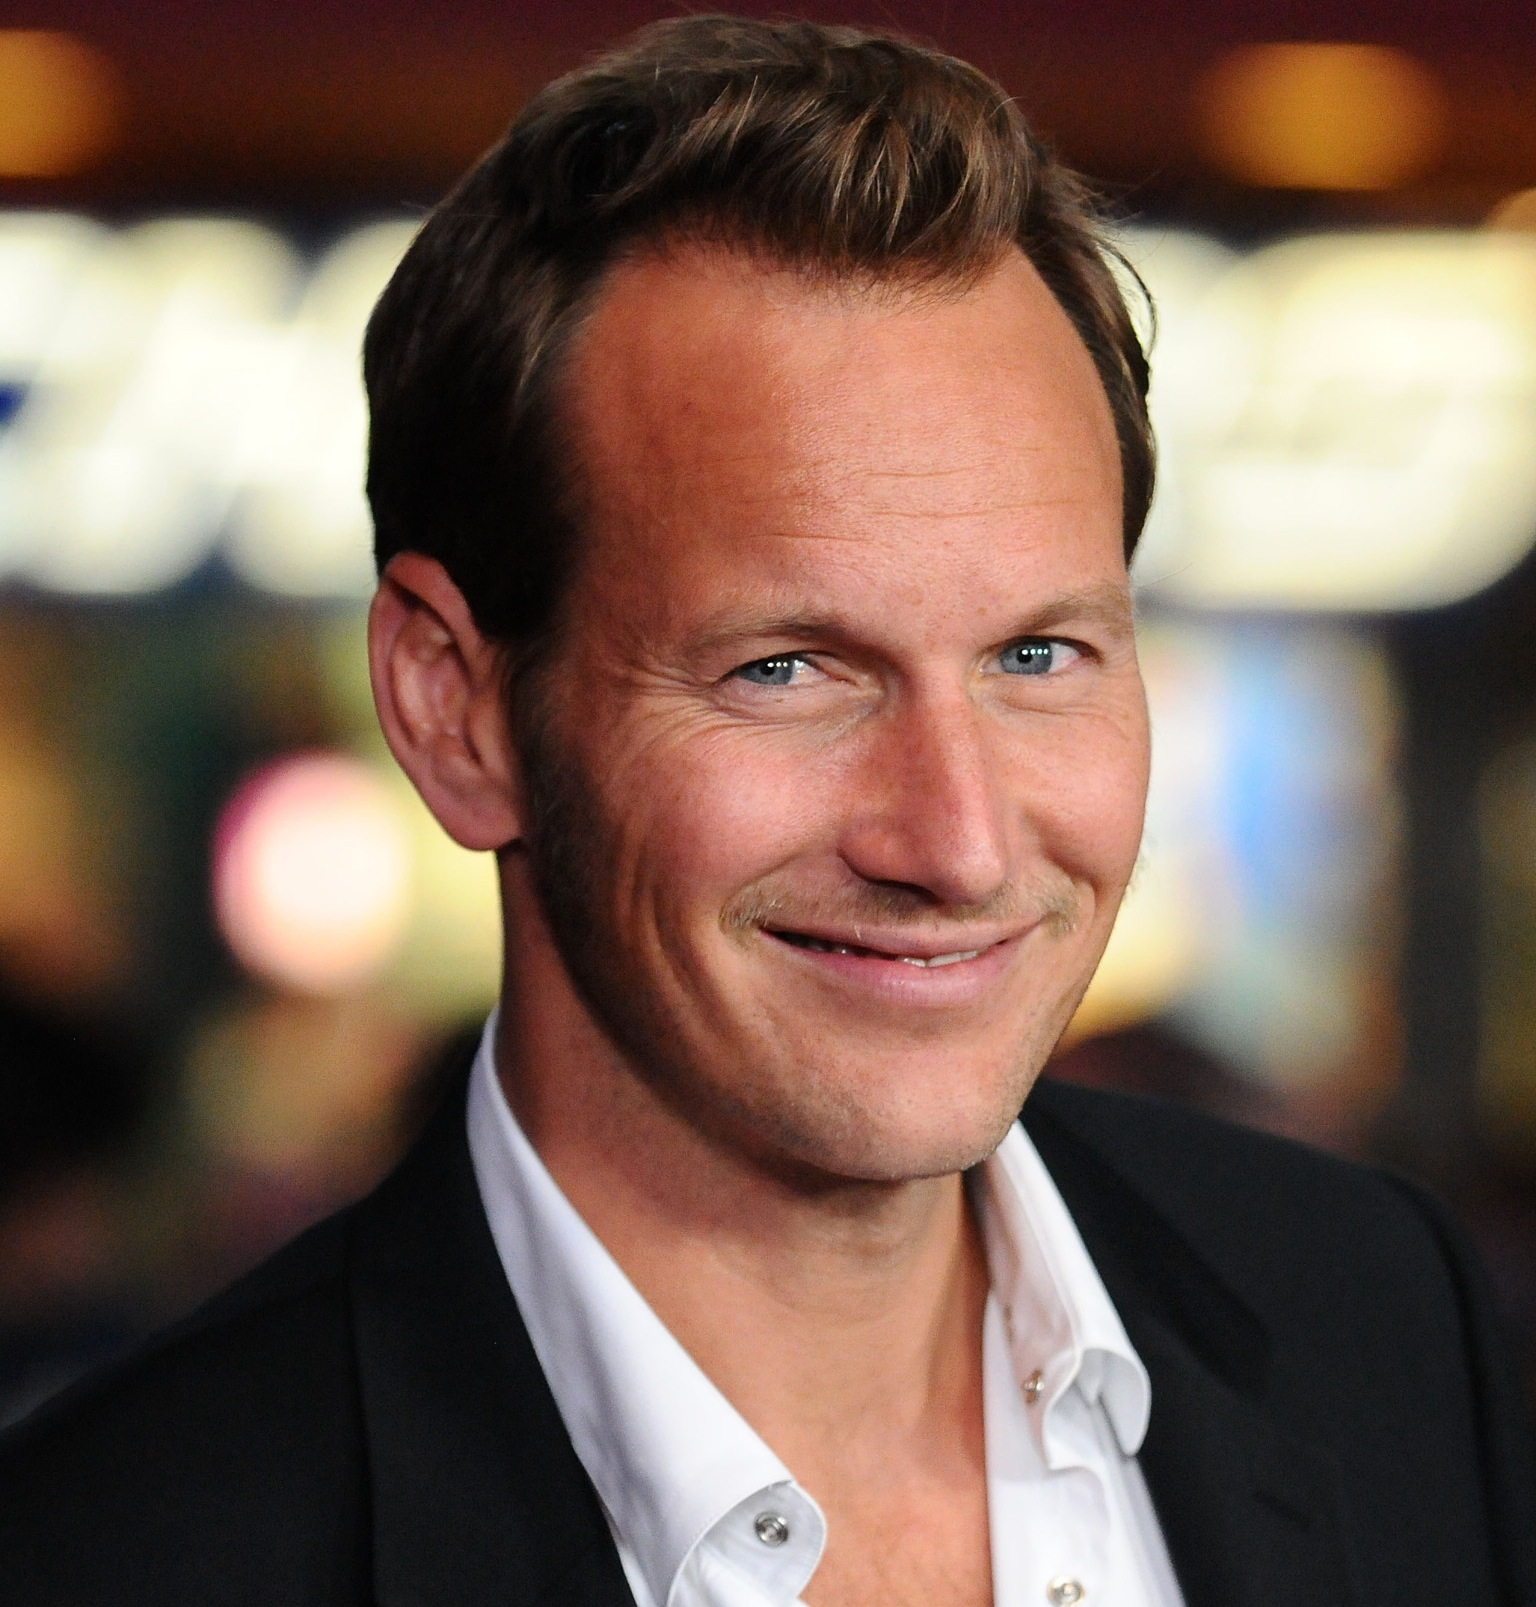 patrick-wilson-age-height-weight